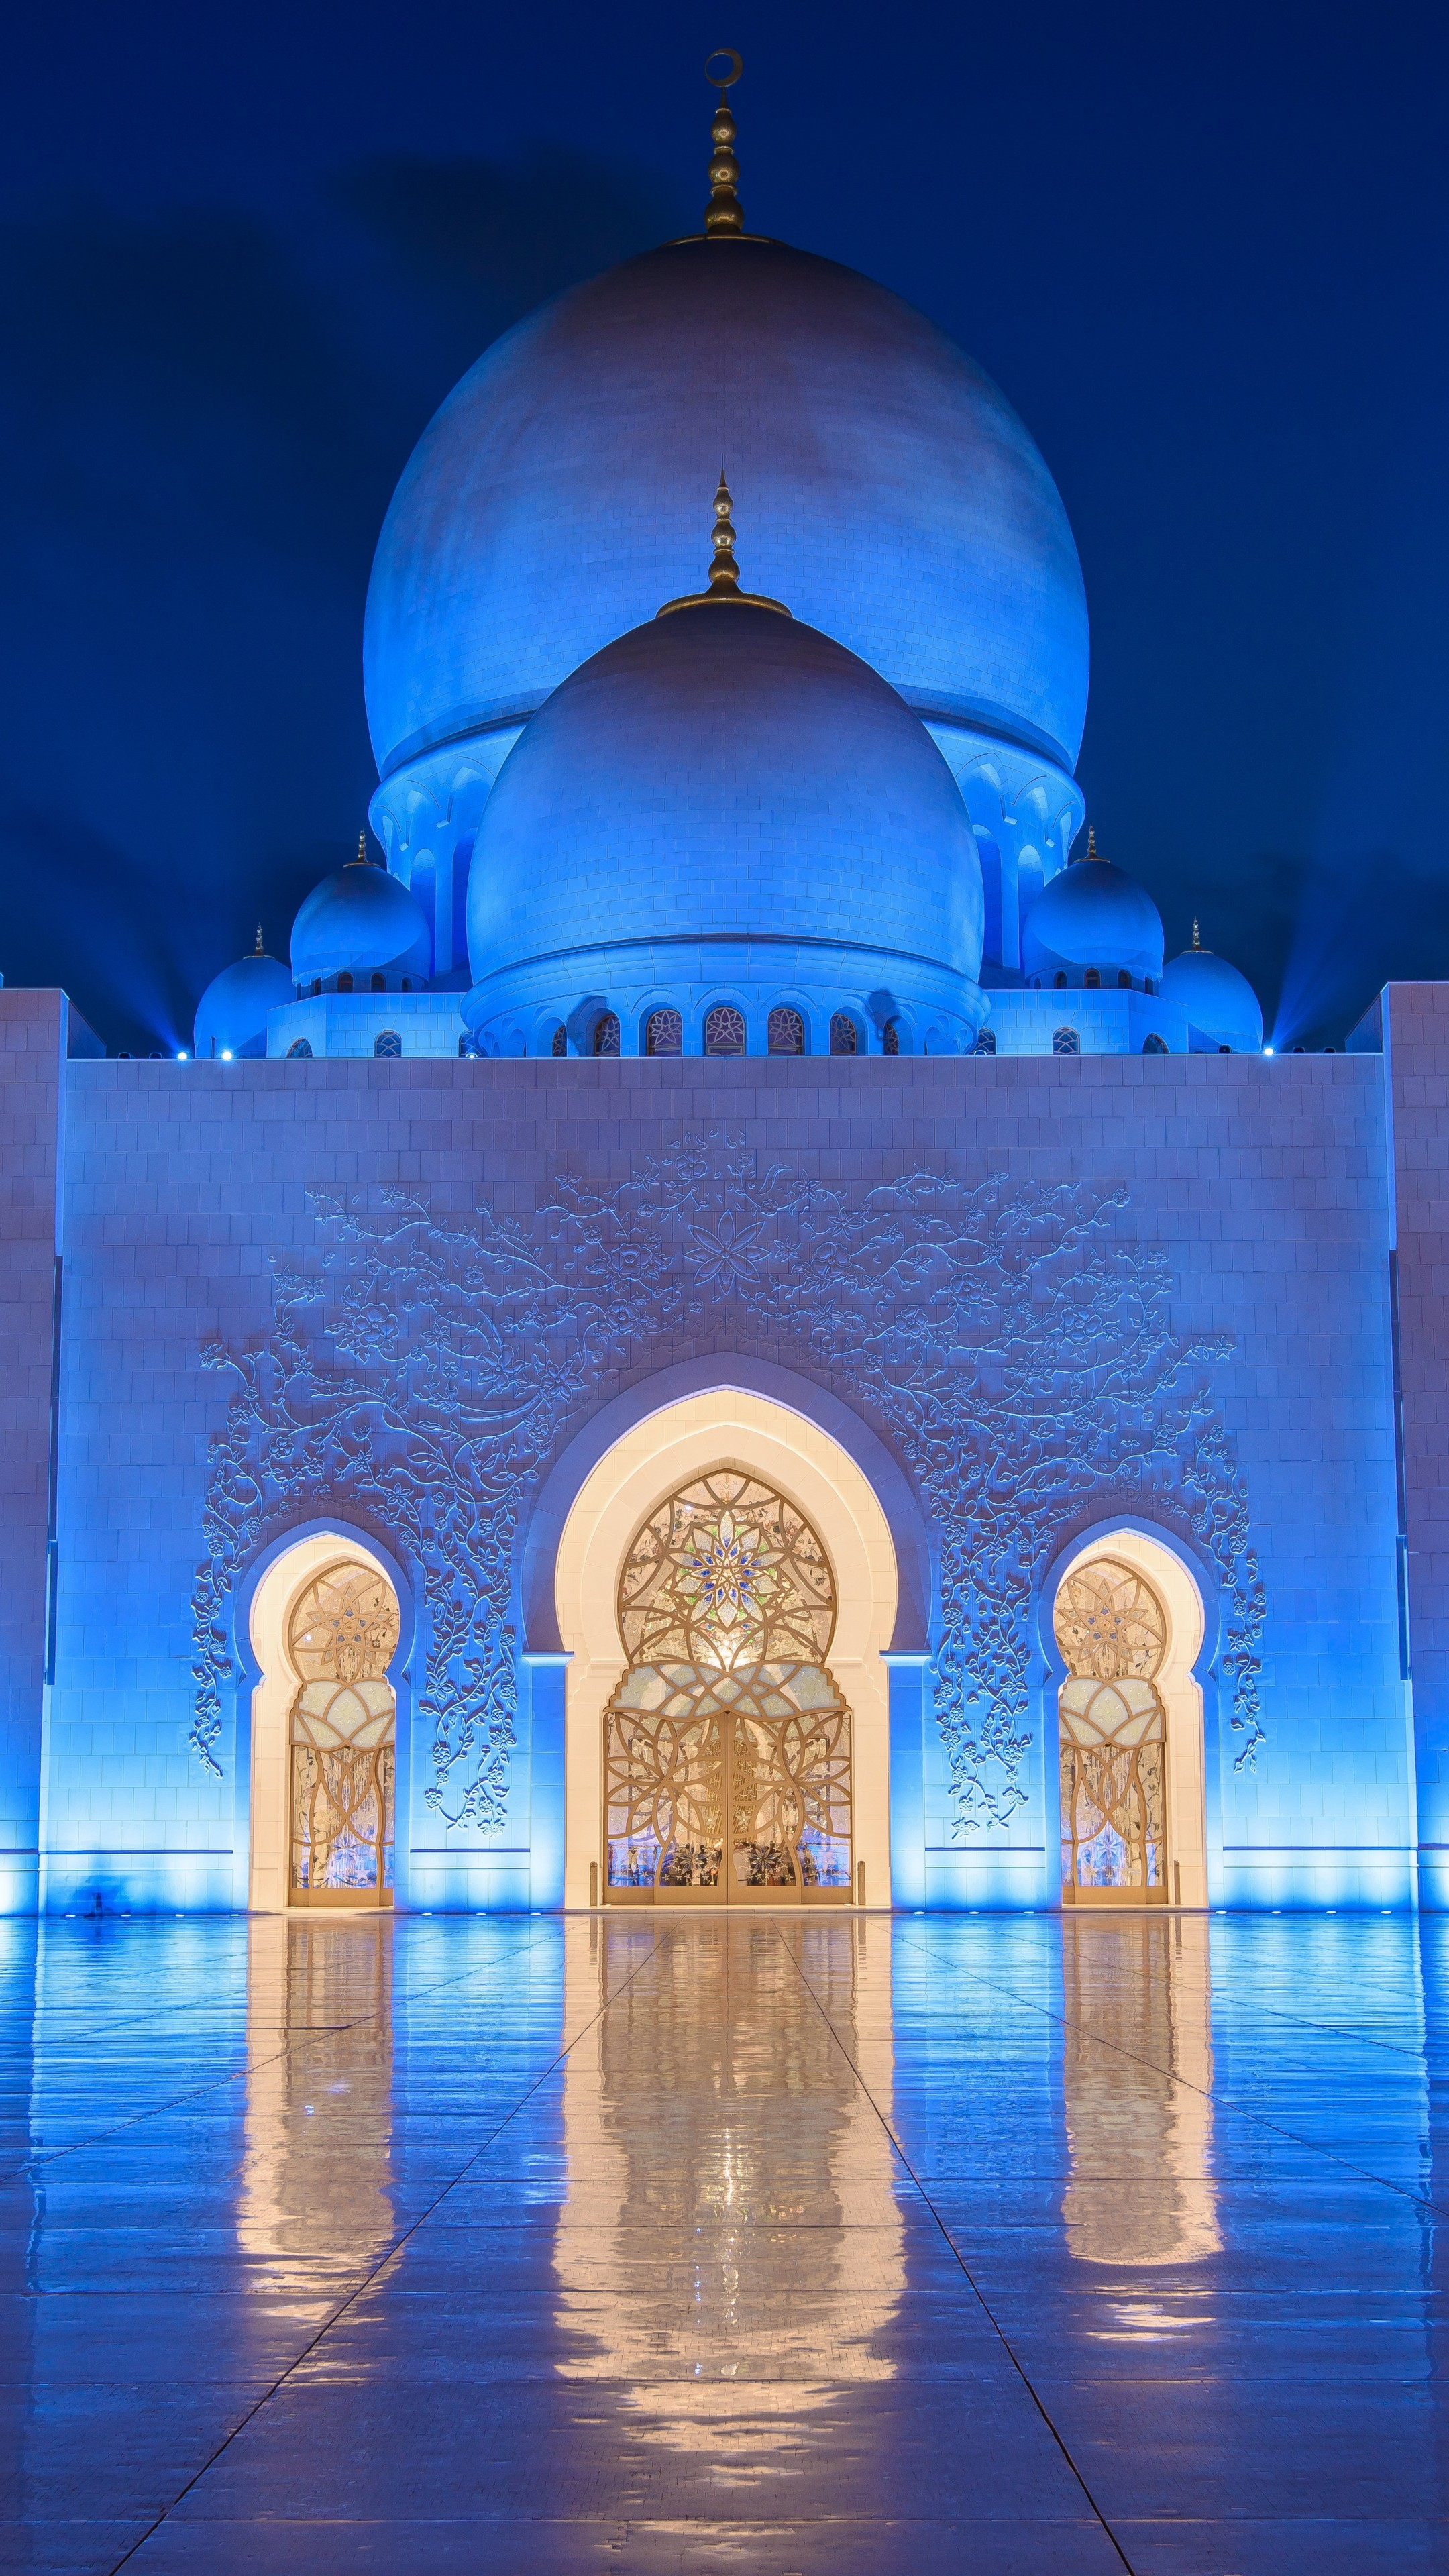 wallpaper sheikh zayed mosque abu dhabi night  architecture